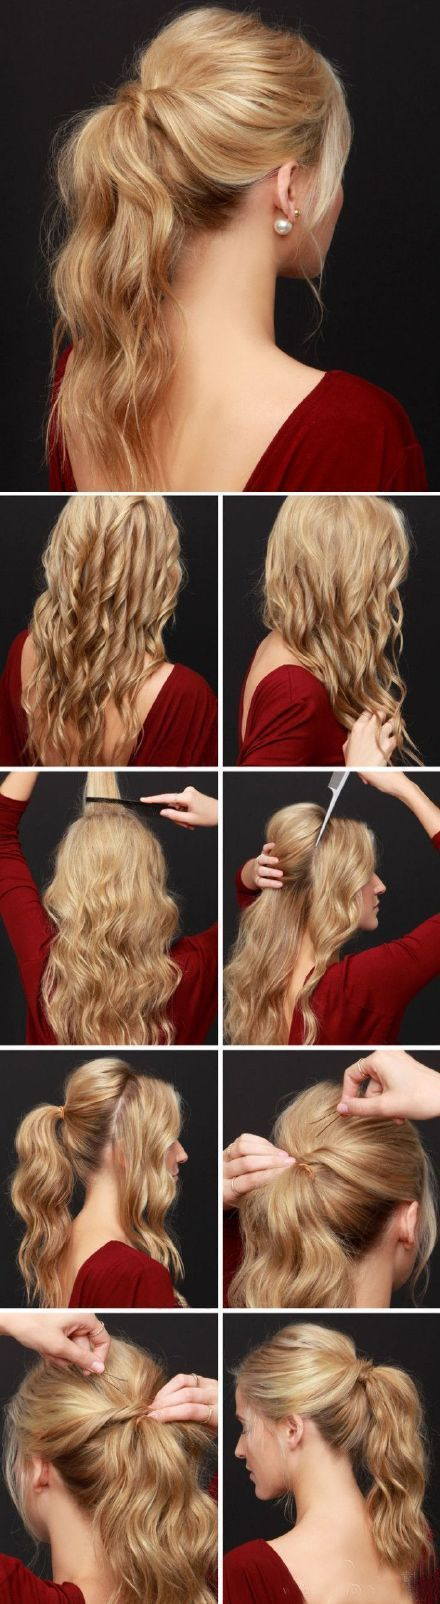 7 Romantic Hairstyles Perfect for Fall | Project Inspired